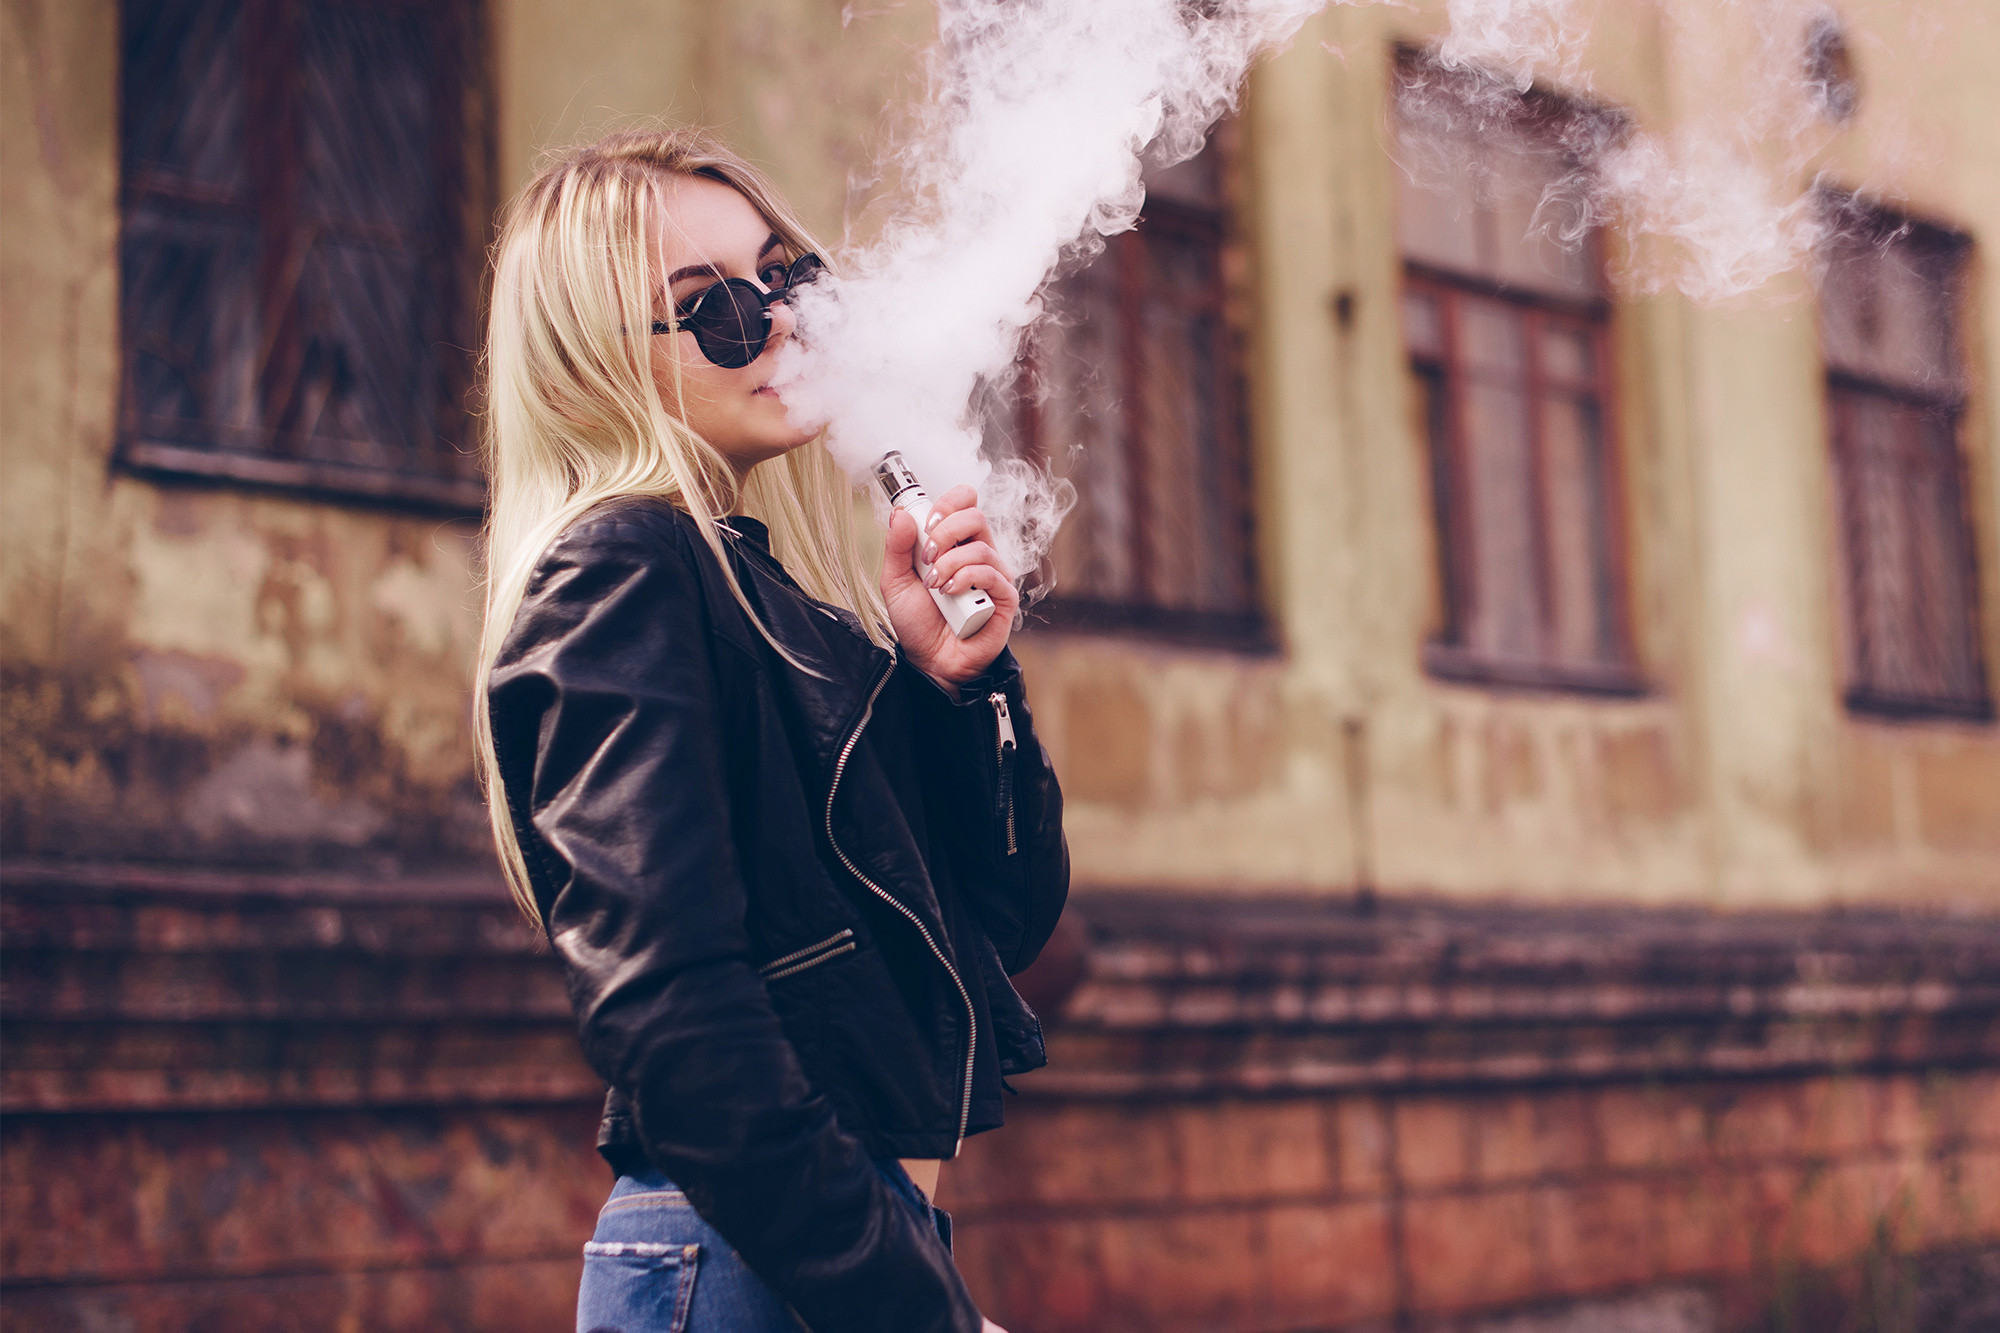 The Best Vape Deals in the UK